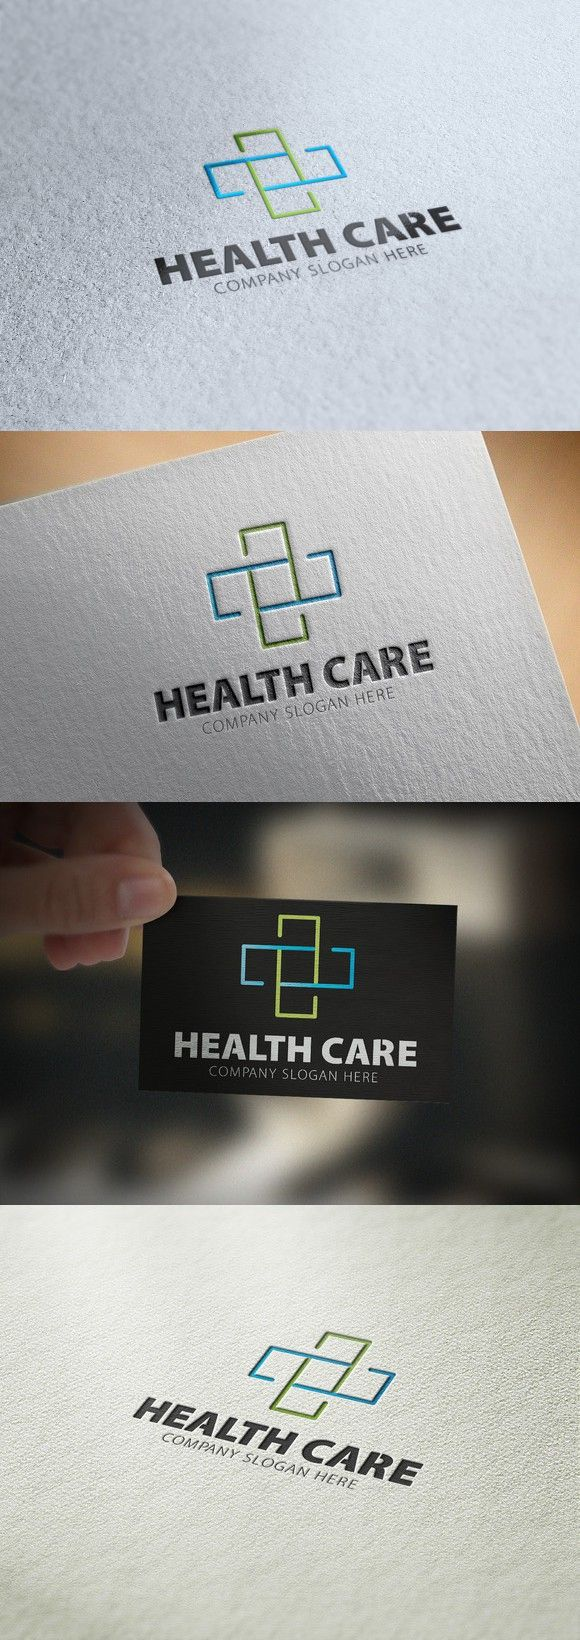 24 best health logo images on Pinterest   Health logo, Hospitals and ...